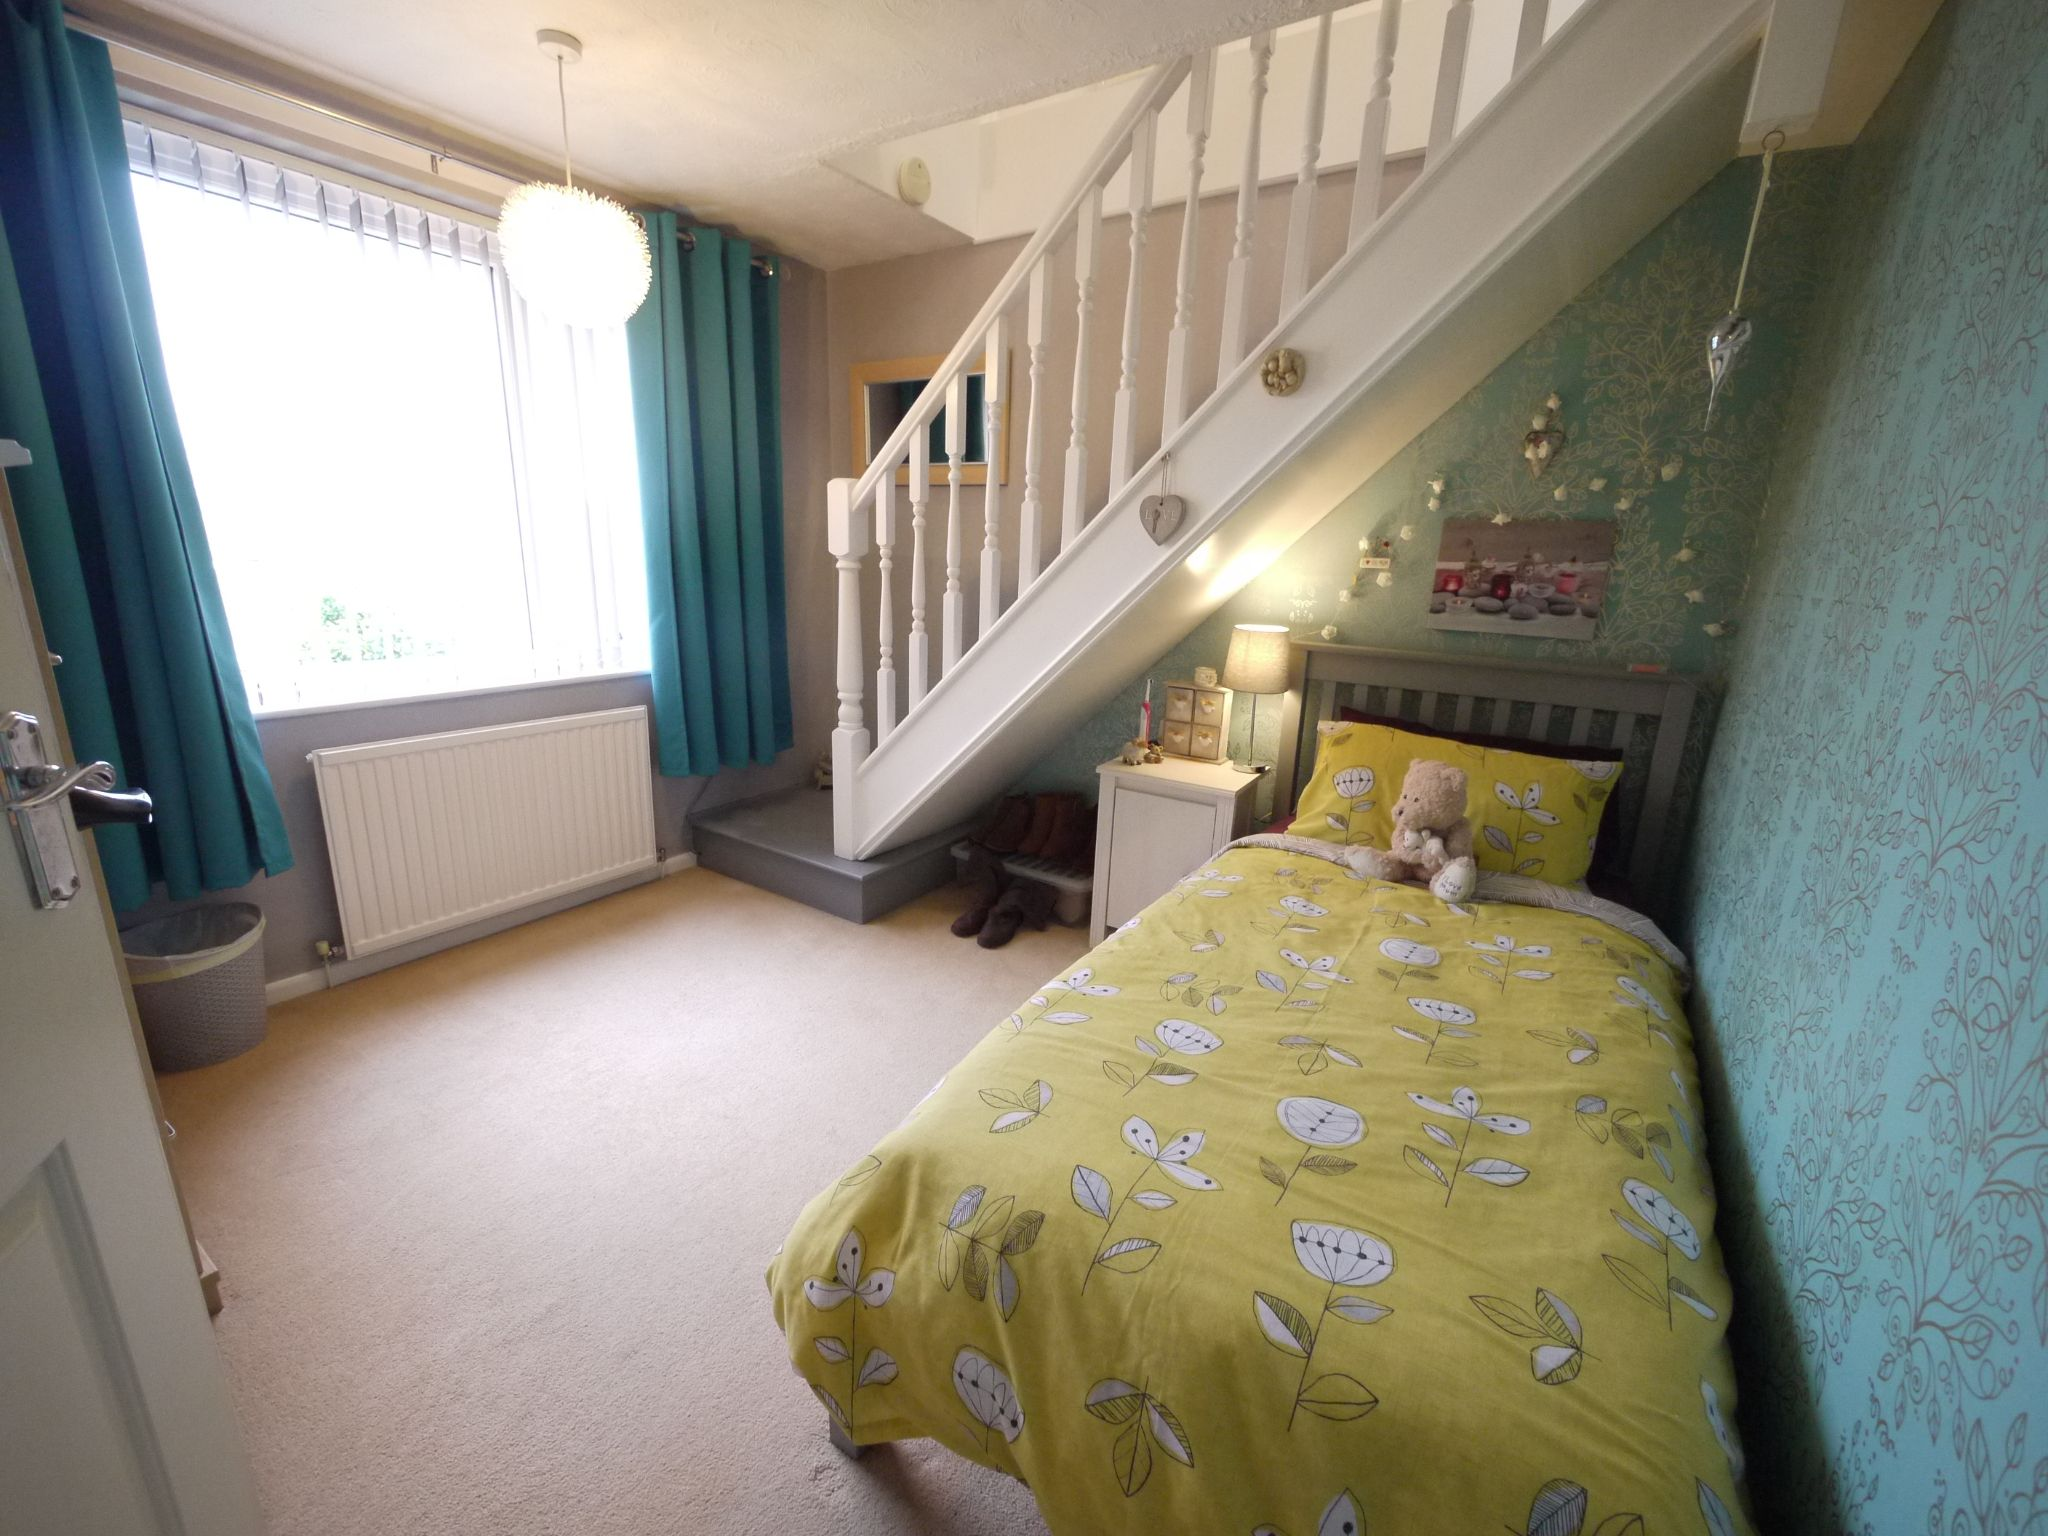 3 bedroom semi-detached house SSTC in Brighouse - Bed2.